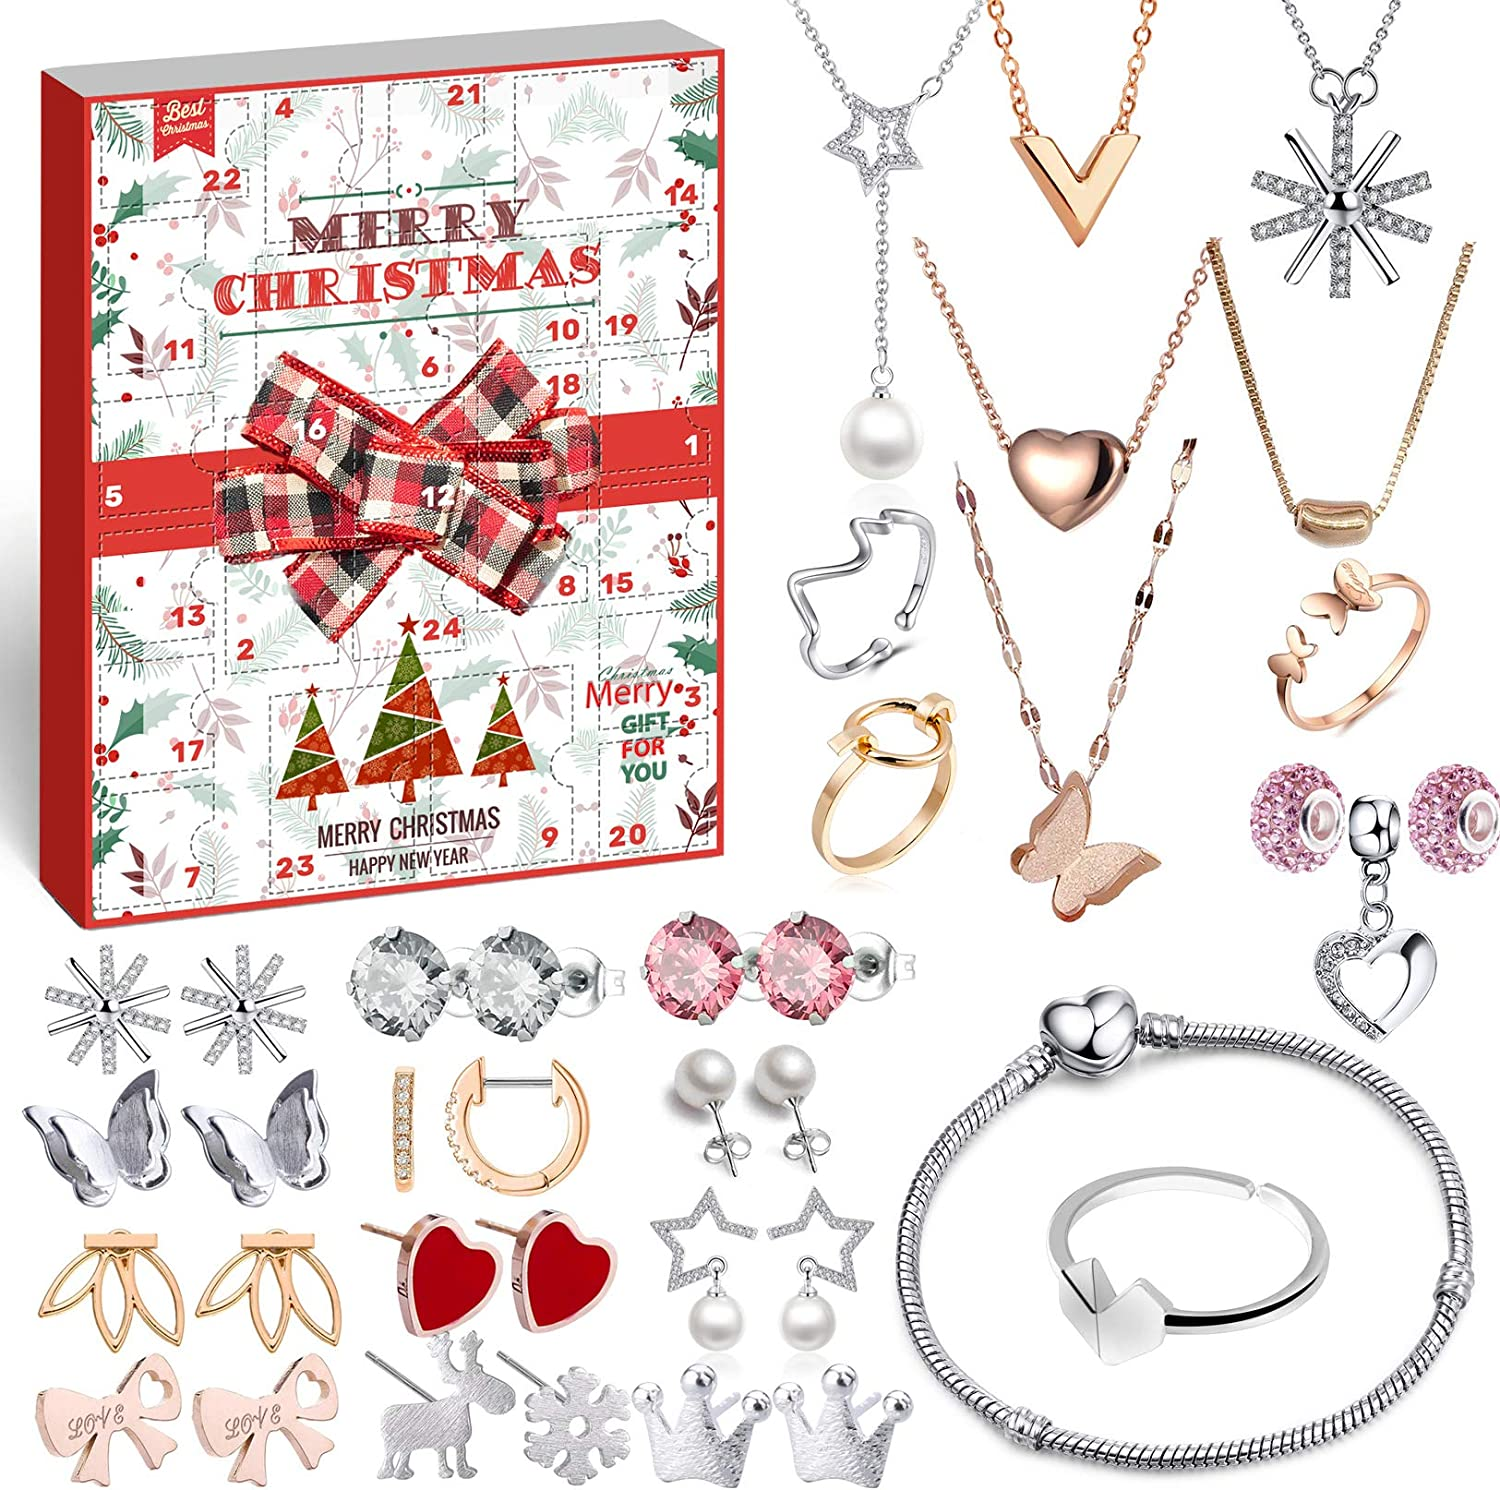 Amazon Com Movinpe Jewelry Advent Calendar For Women 2020 Christmas Fashion Bracelet Necklace Earring Rings 24 Days Countdown To Holiday Xmas Surprise Gift For Wife Daughter Mom Adult Girls Home Kitchen